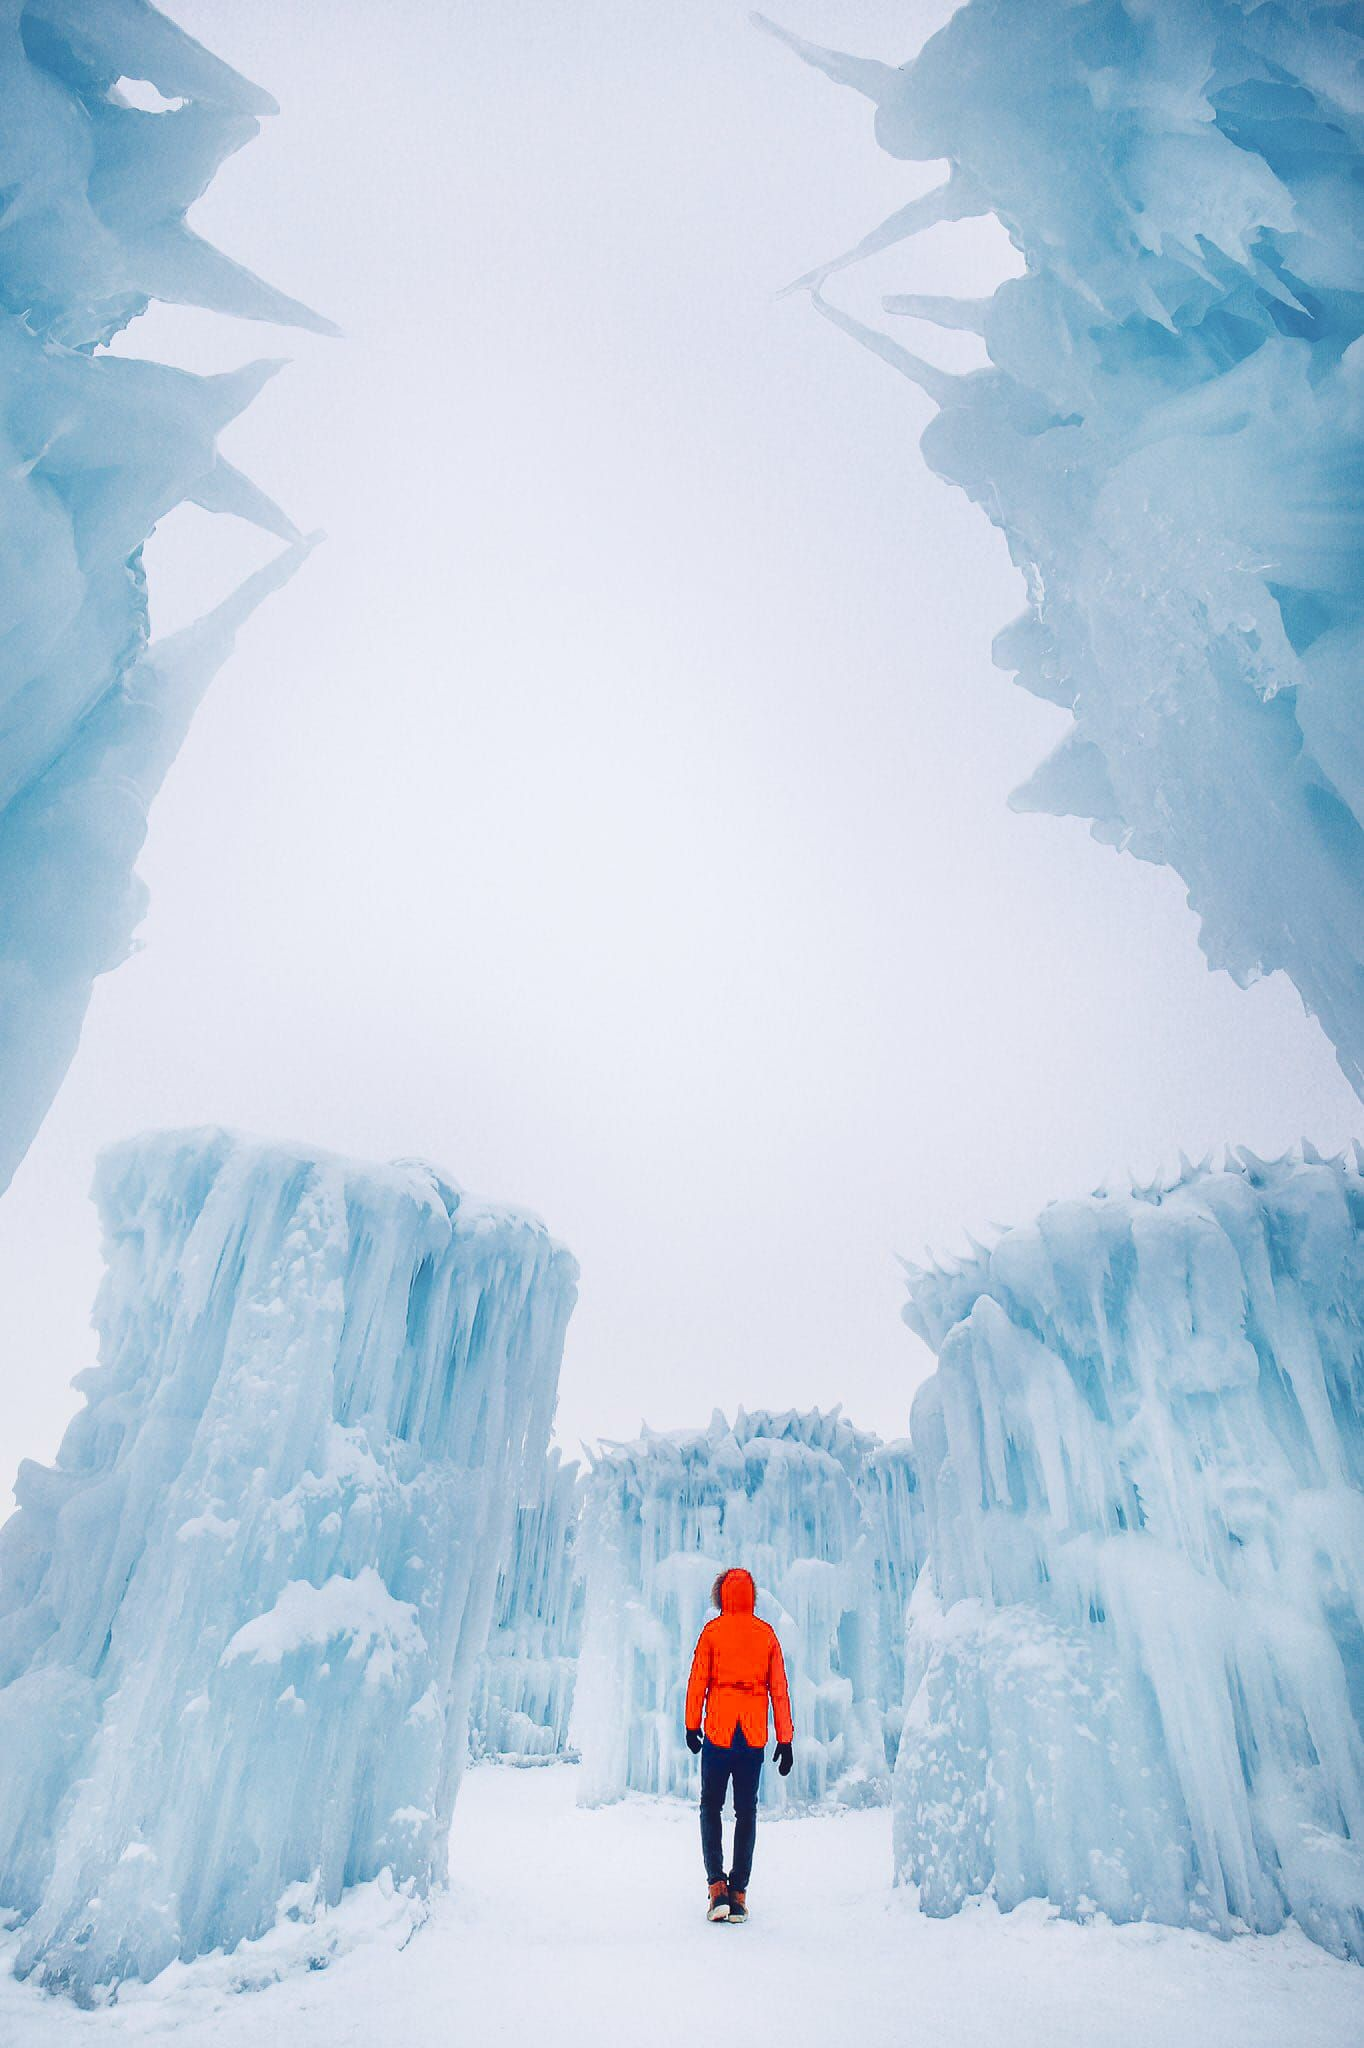 How To See The Most Beautiful Ice Castle In Alberta